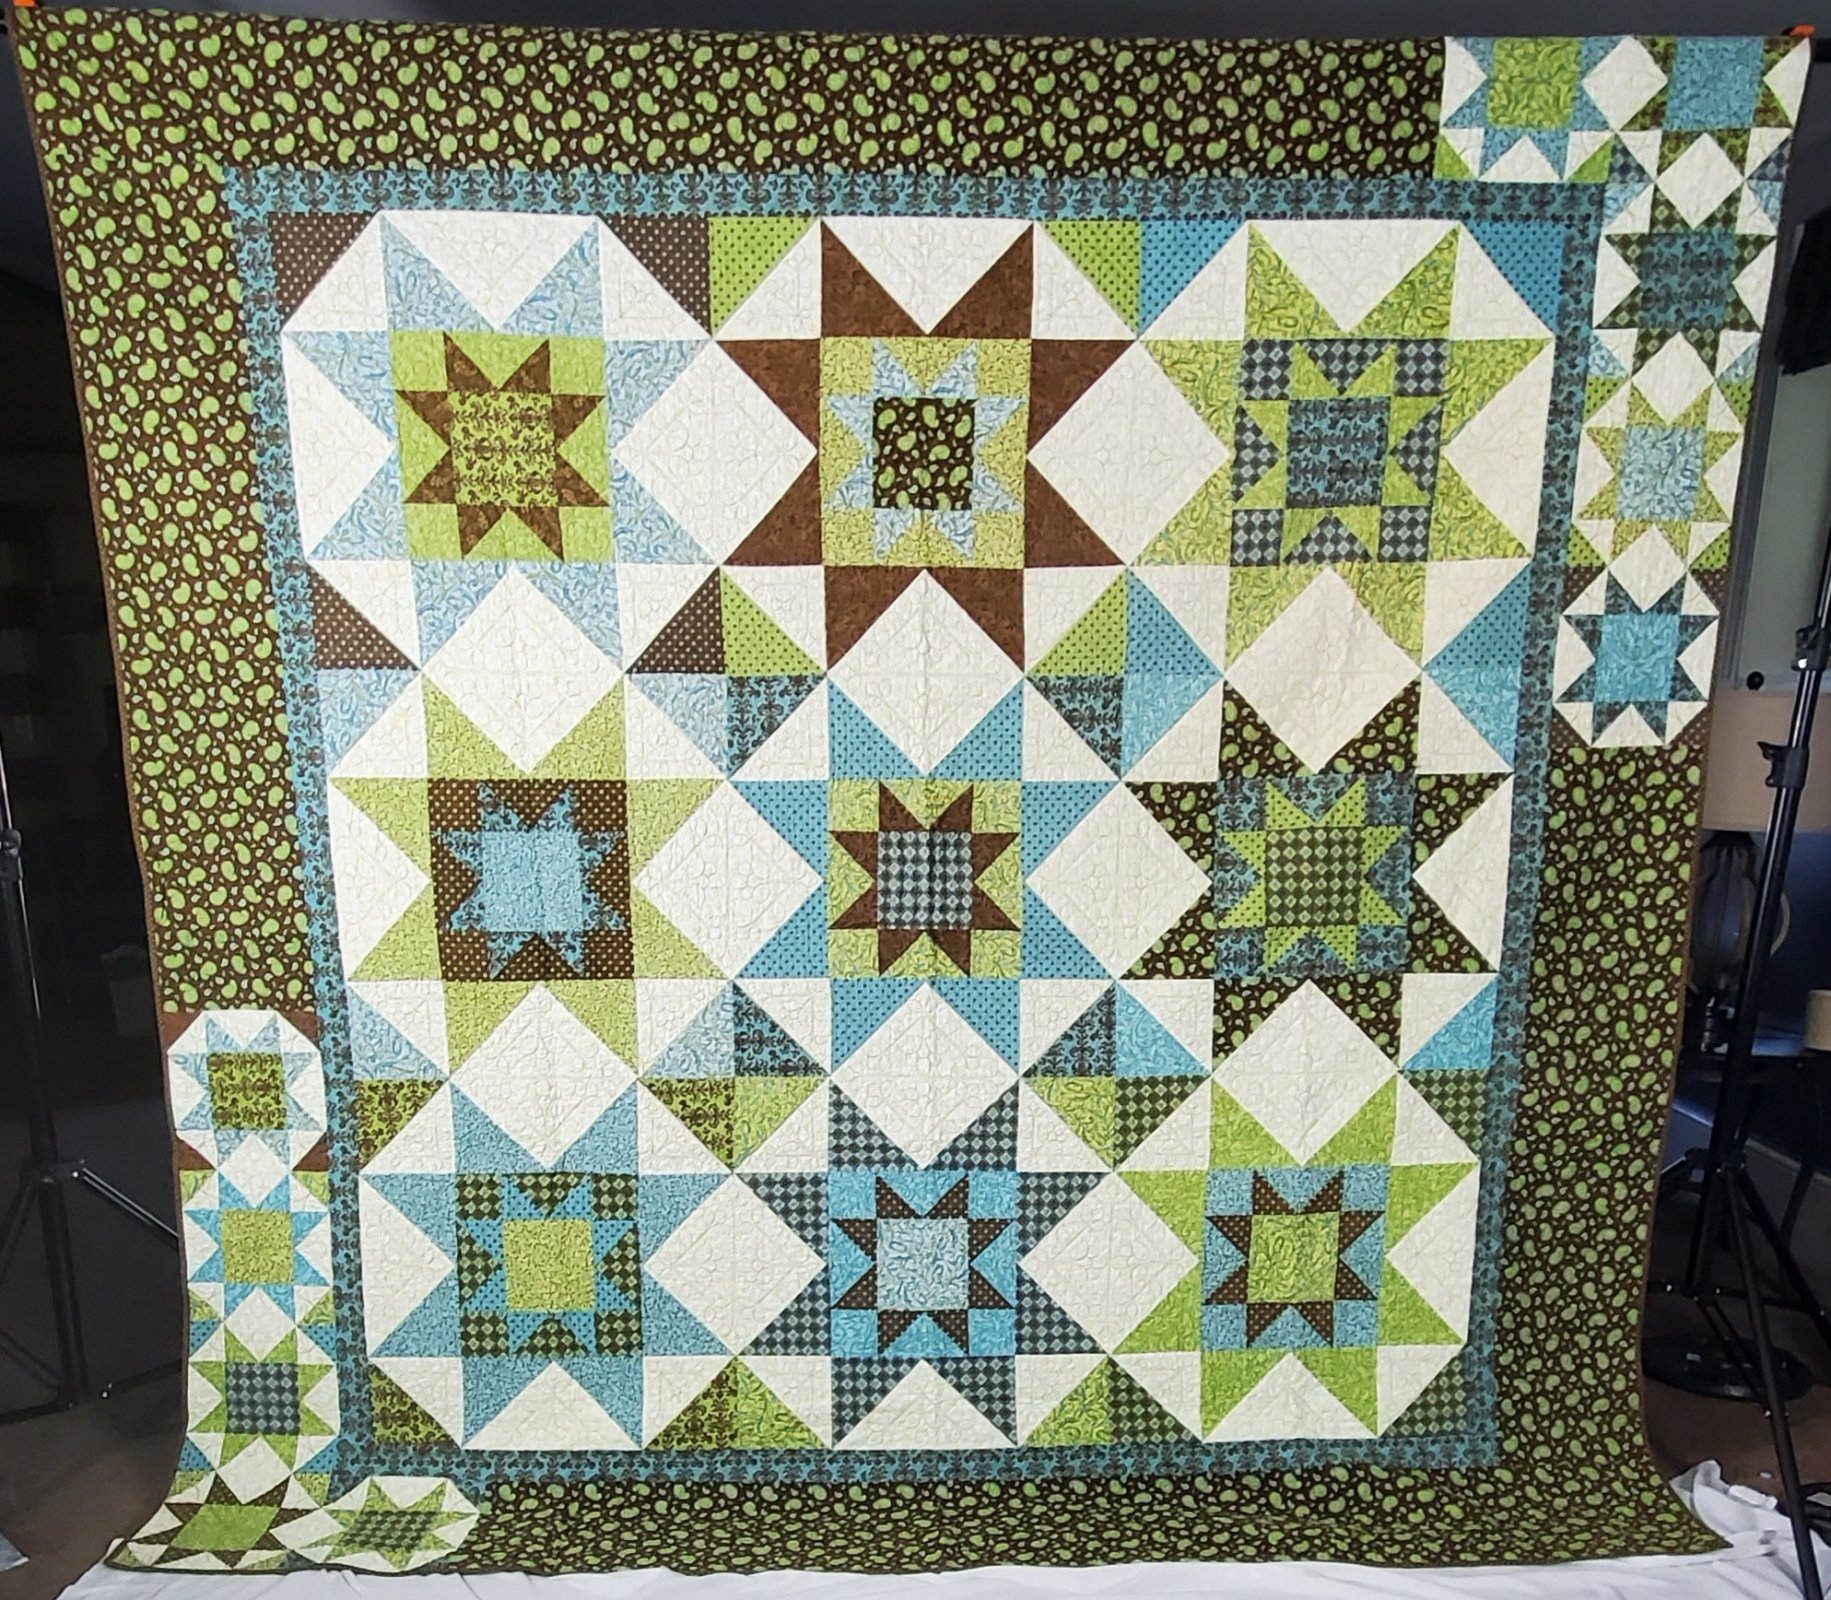 Butterfly Daydreams quilt featuring Moda prints